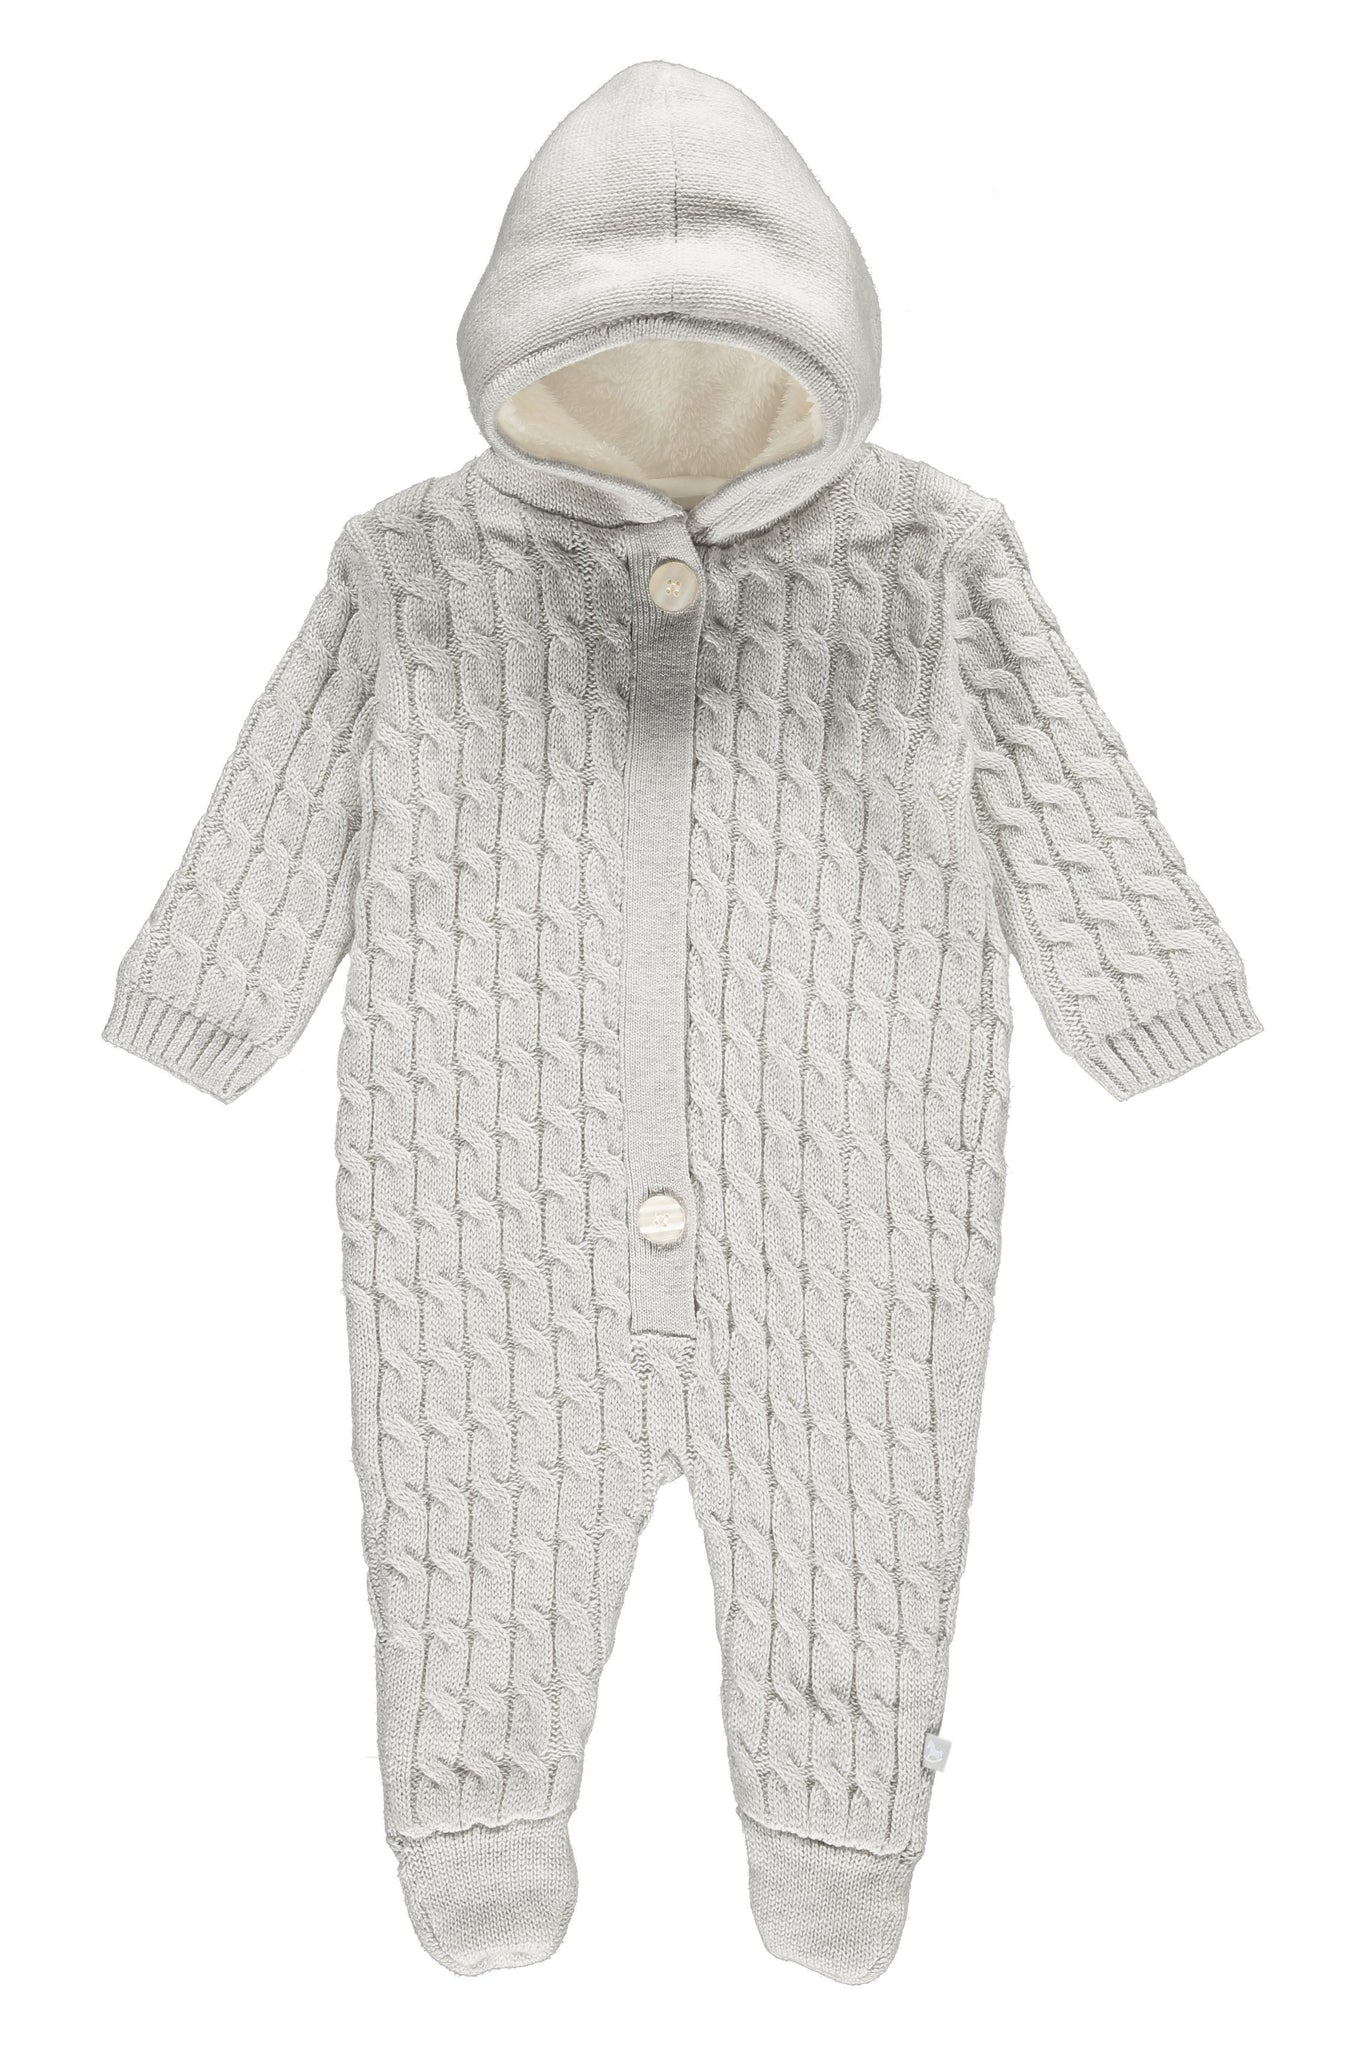 Soft Grey Lined Knitted Pramsuit